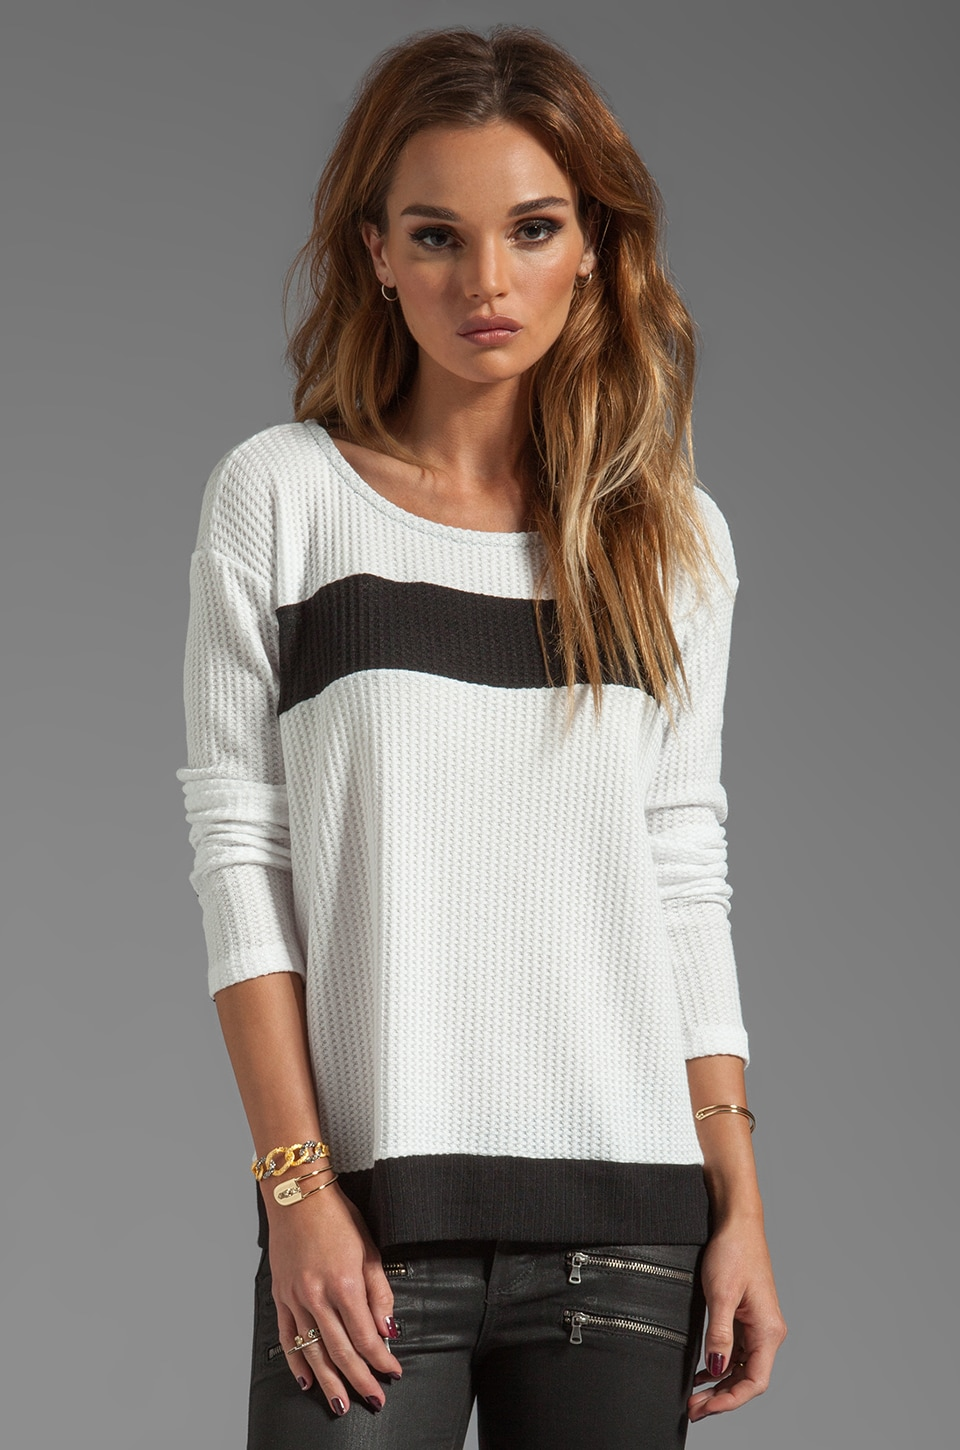 Splendid Waffle Loose Knit in Sand Dollar/ Black